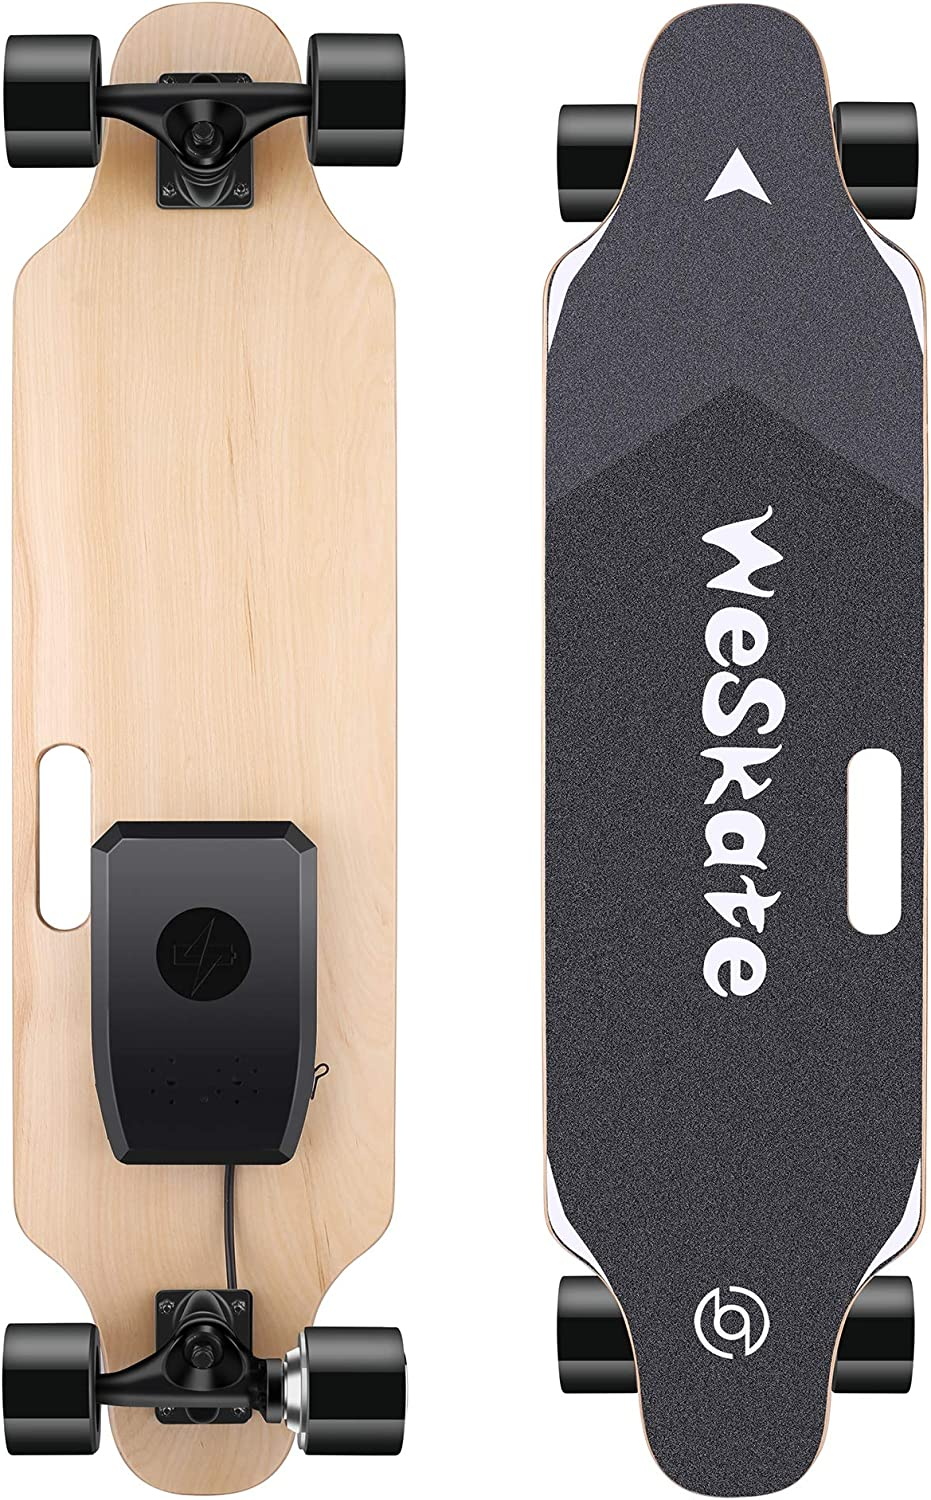 Details about  /Electric Skateboard Longboard 350W Dual Motor 12MPH Top Speed 7 Layers g 02 h 13